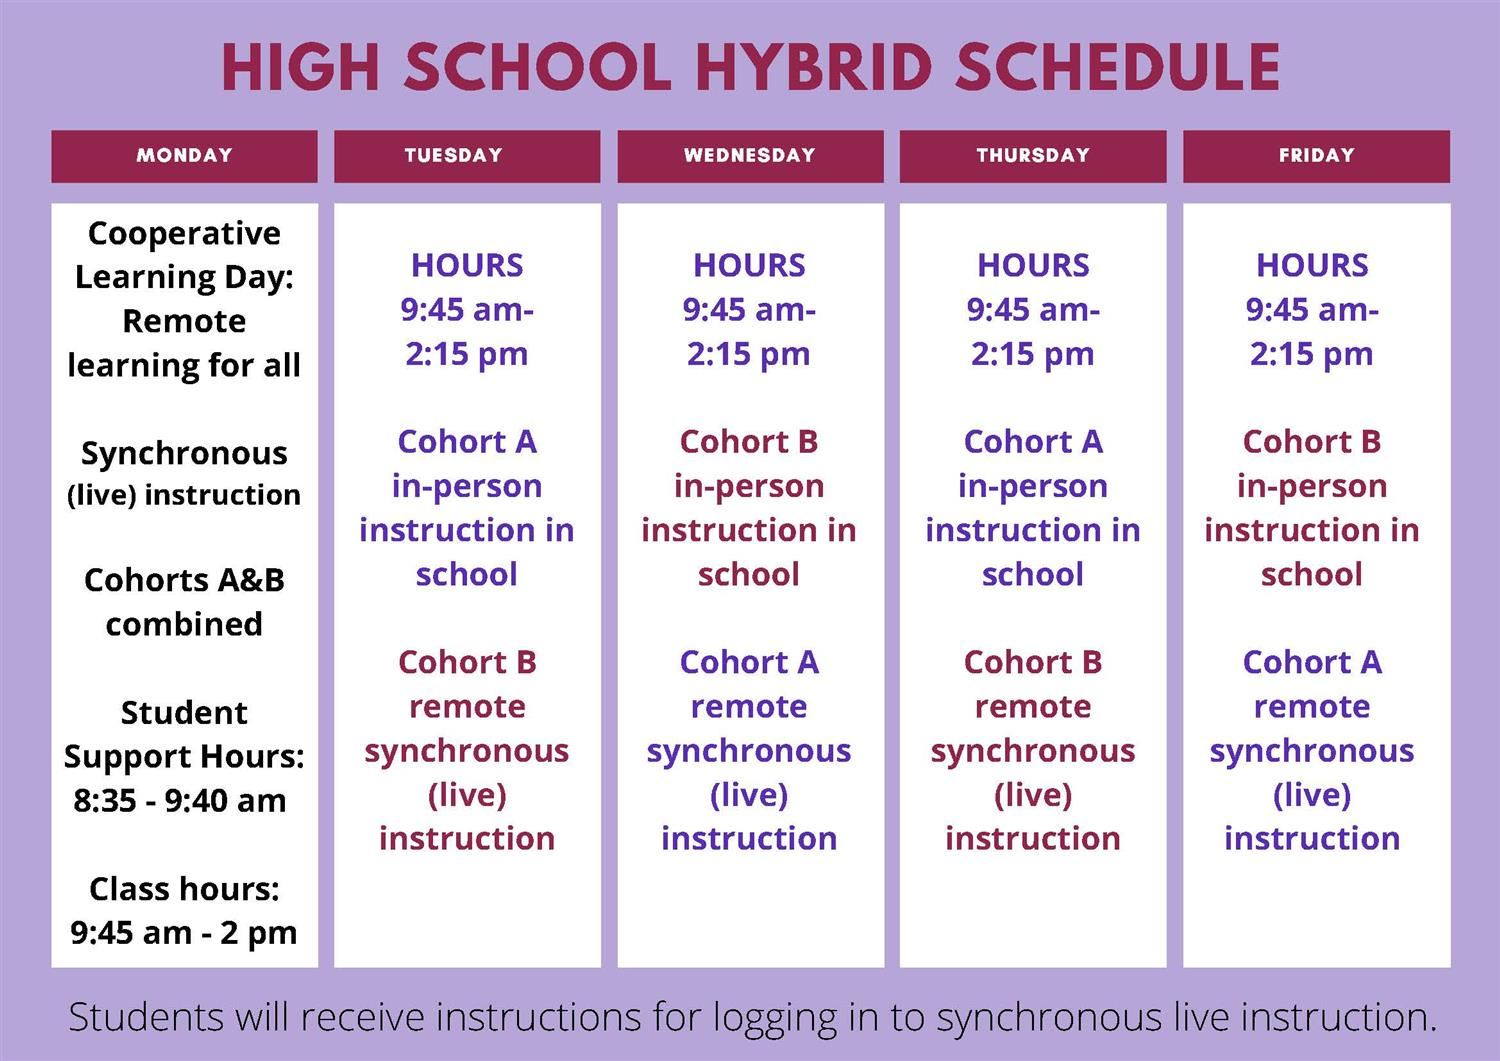 High School Hybrid Schedule